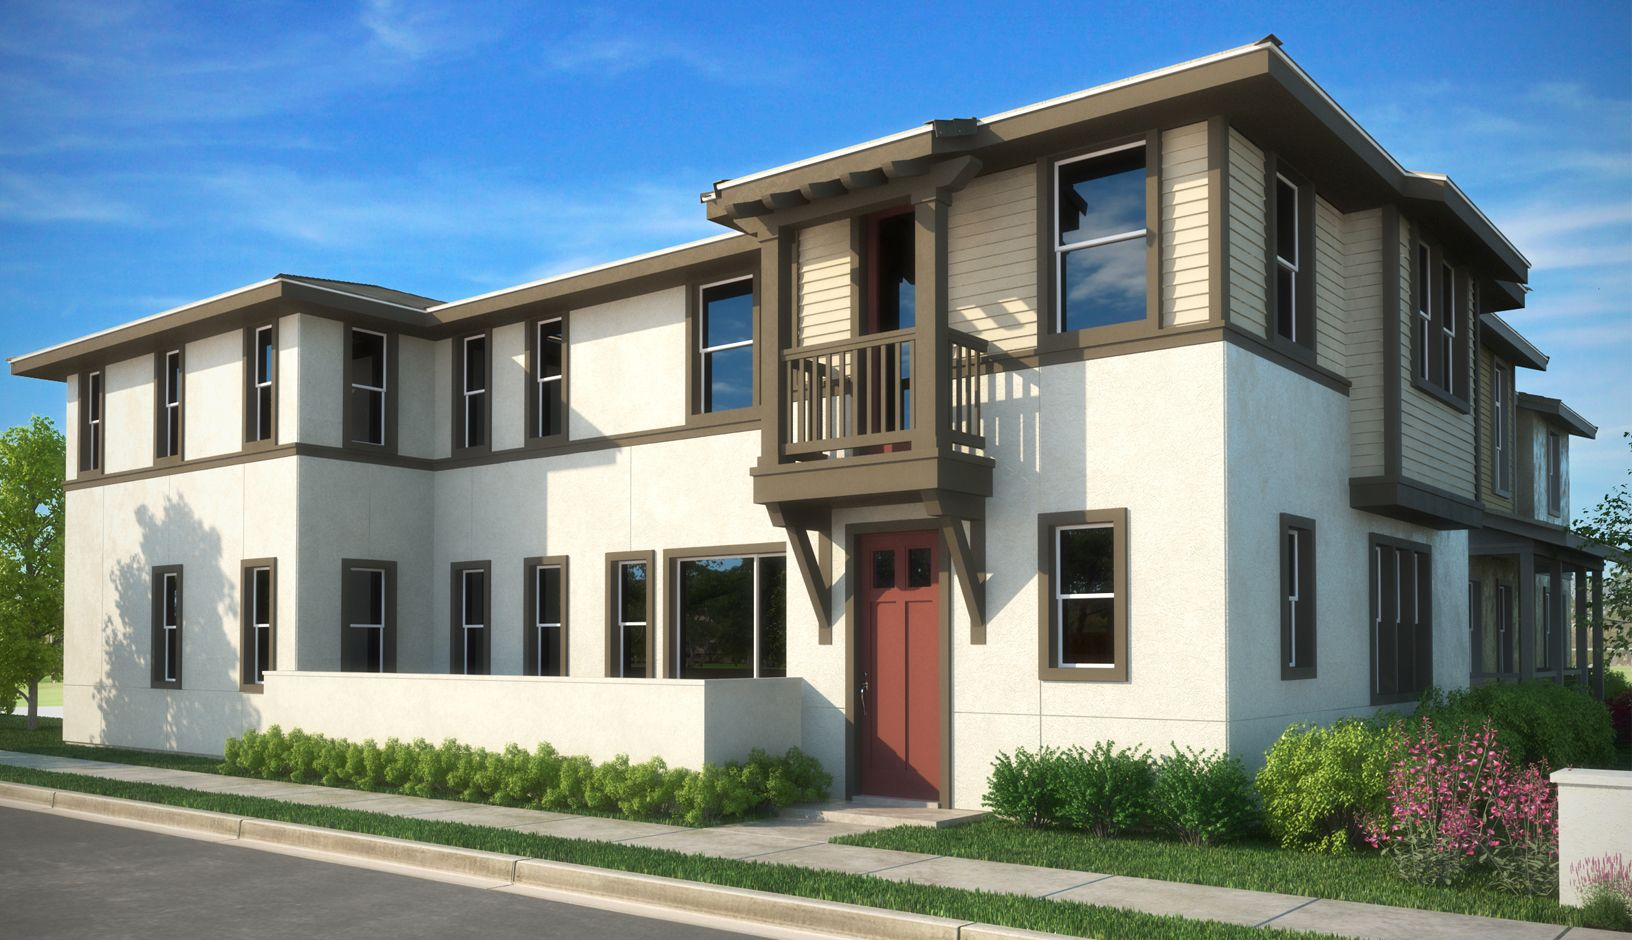 Single Family for Sale at Cadence At Alameda Landing - Residence 3 Alt 421 Singleton Avenue Alameda, California 94501 United States